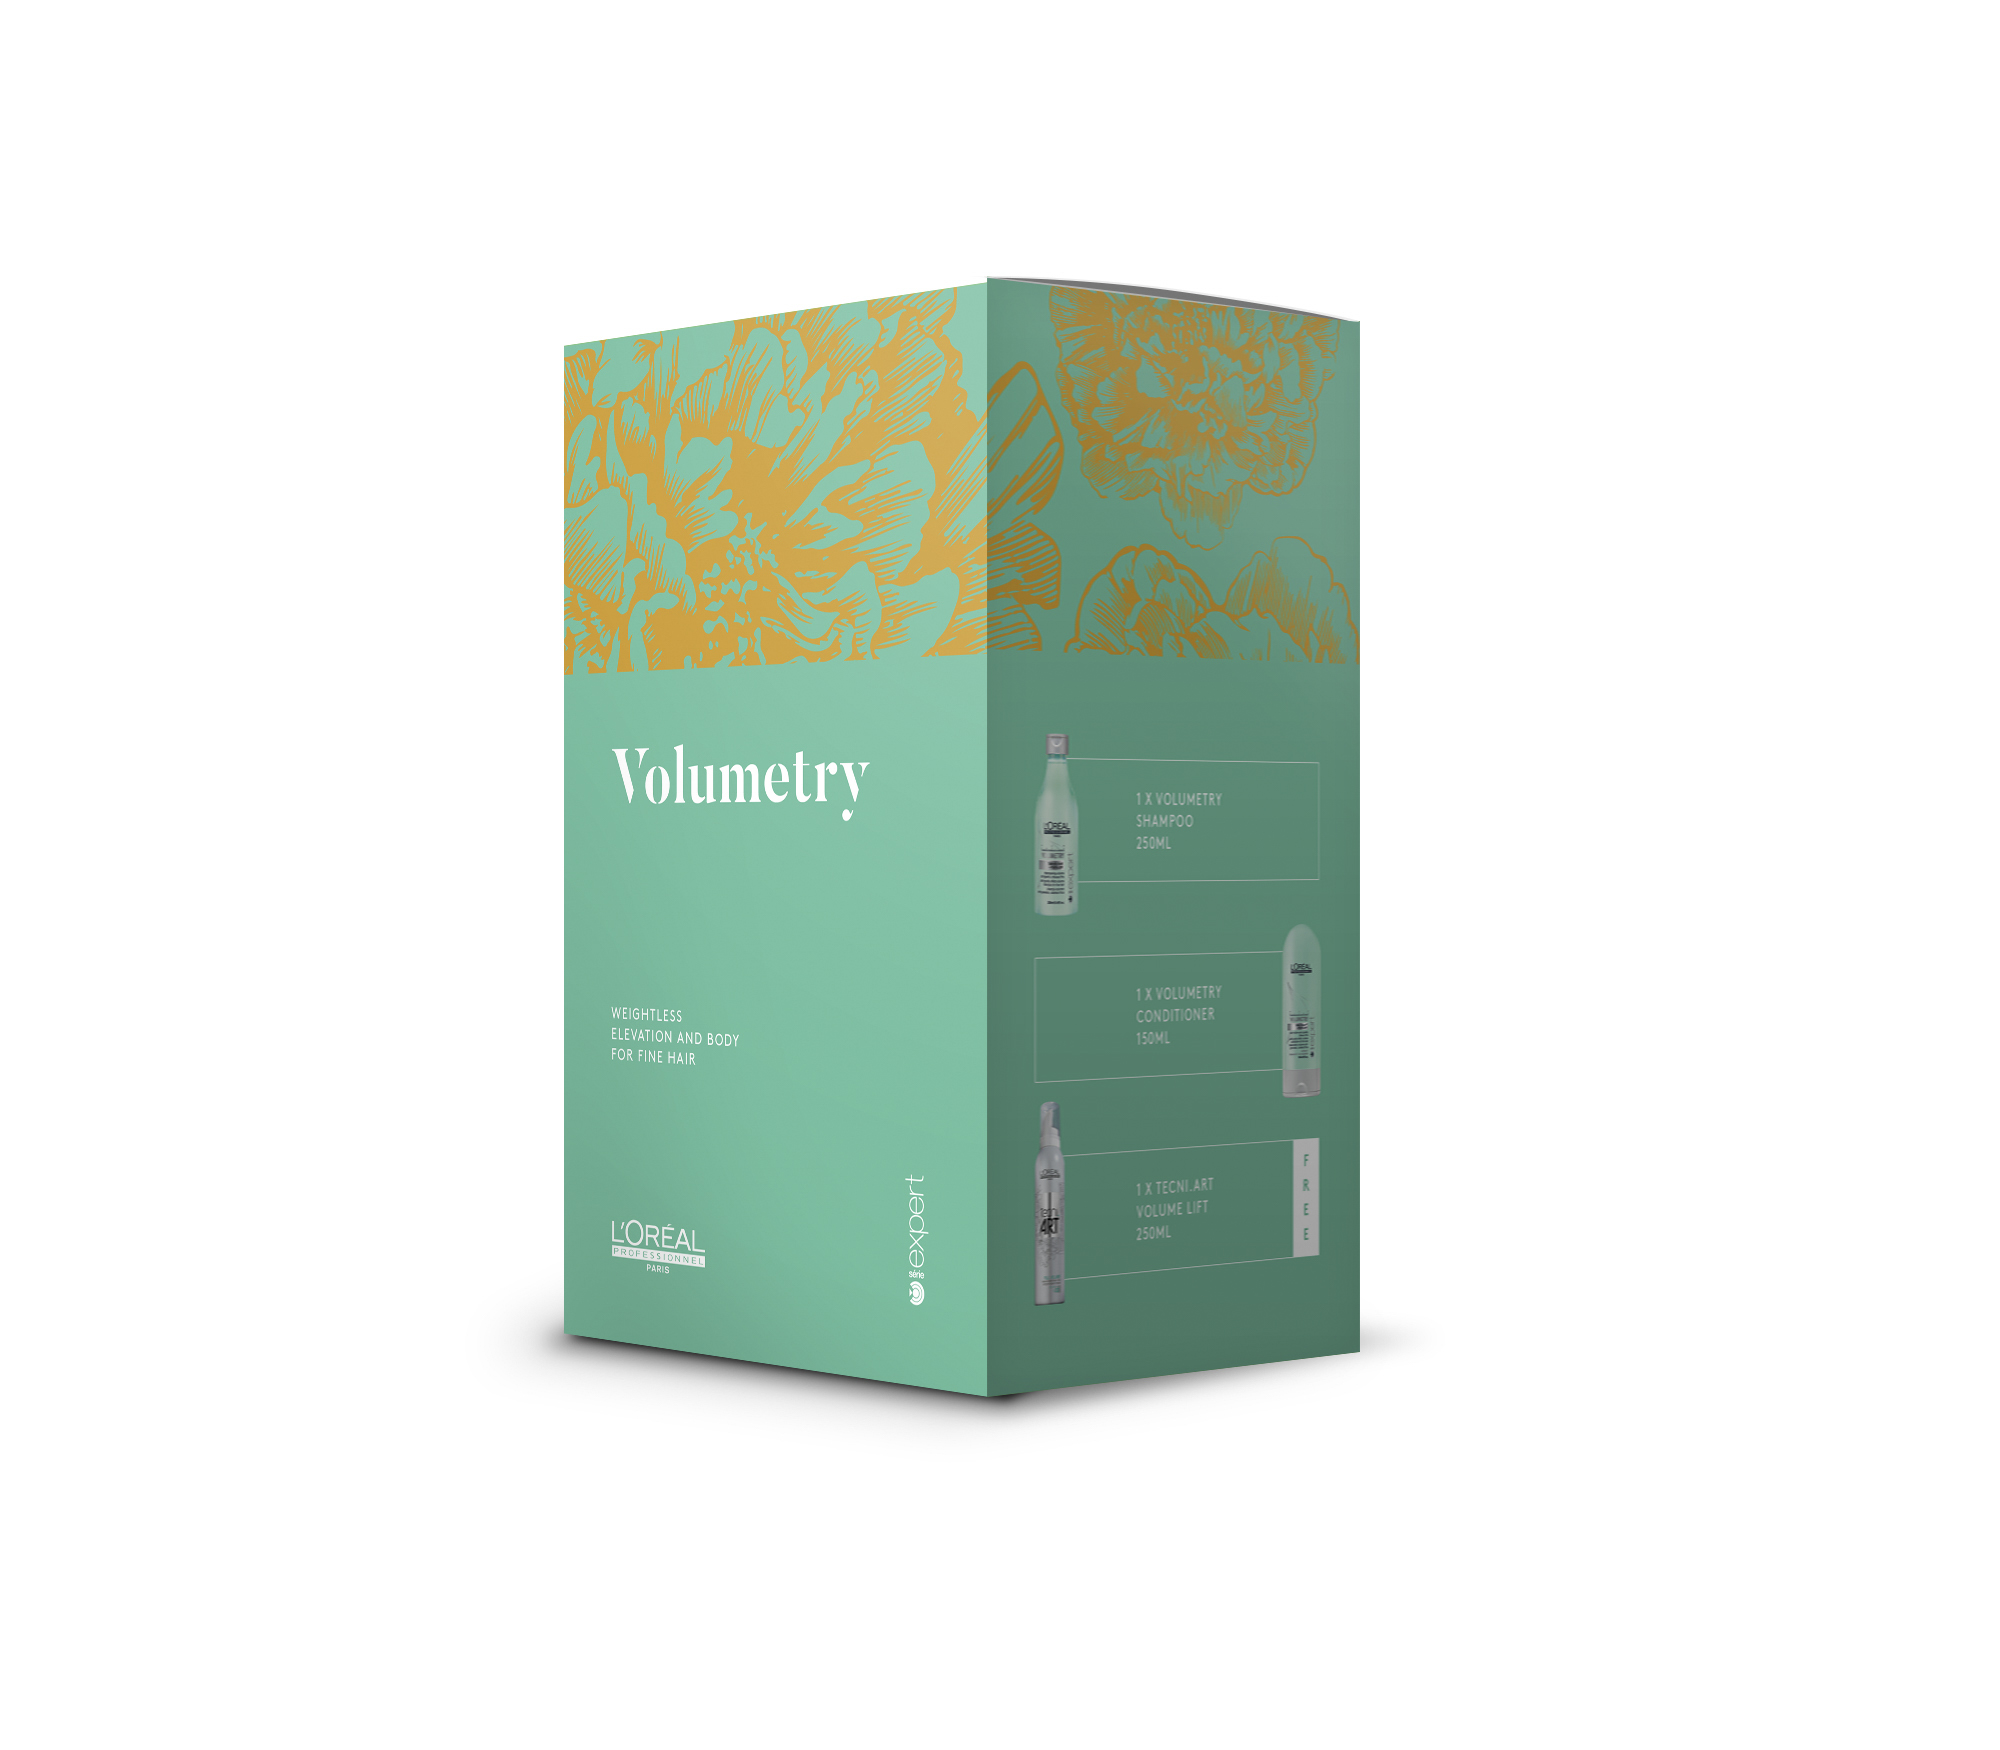 loreal-professionnel-volumetry-christmas-pack-rrp59-00